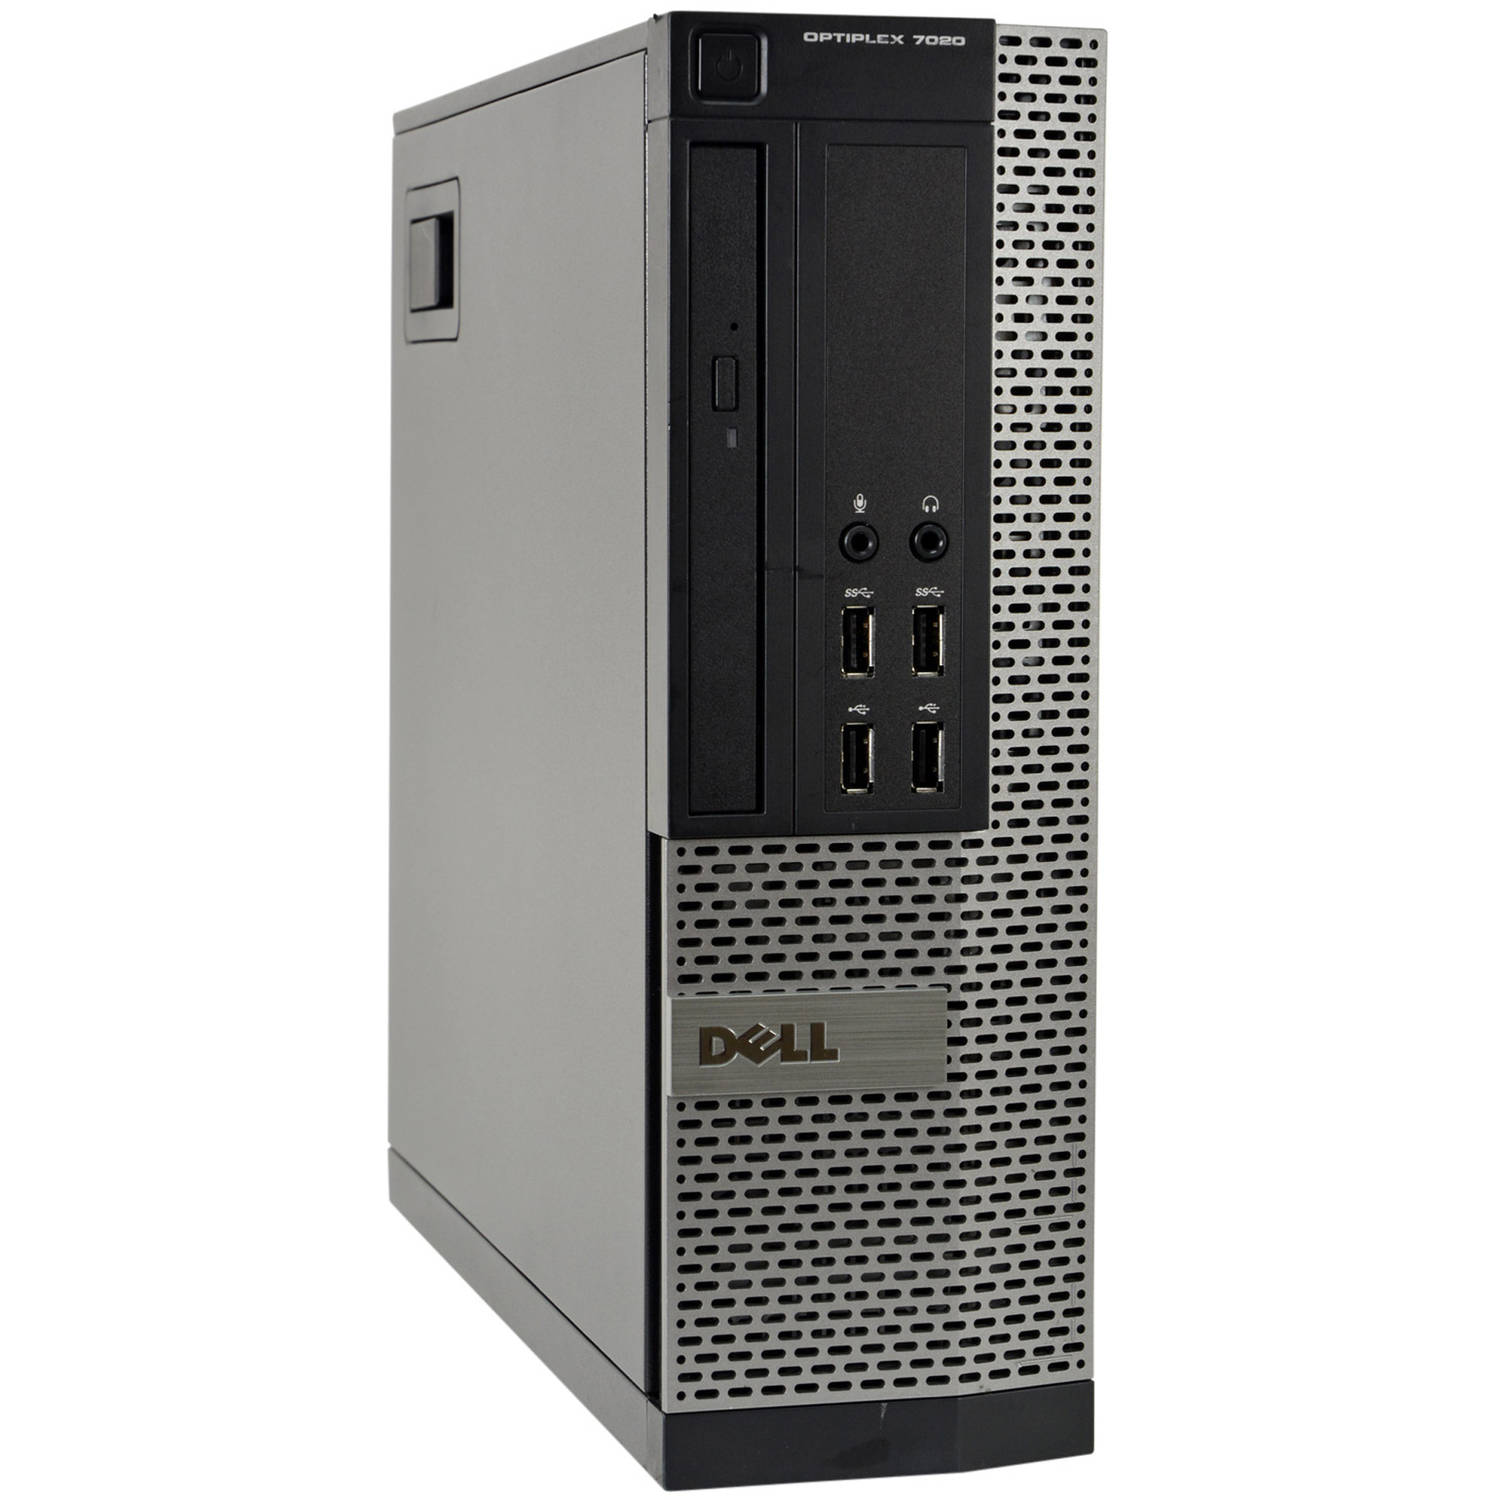 Refurbished Dell 7020-SFF Desktop PC with Intel Core i7-4770 Processor, 8GB Memory, 500GB Hard Drive and Windows 10 Pro (Monitor Not Included)